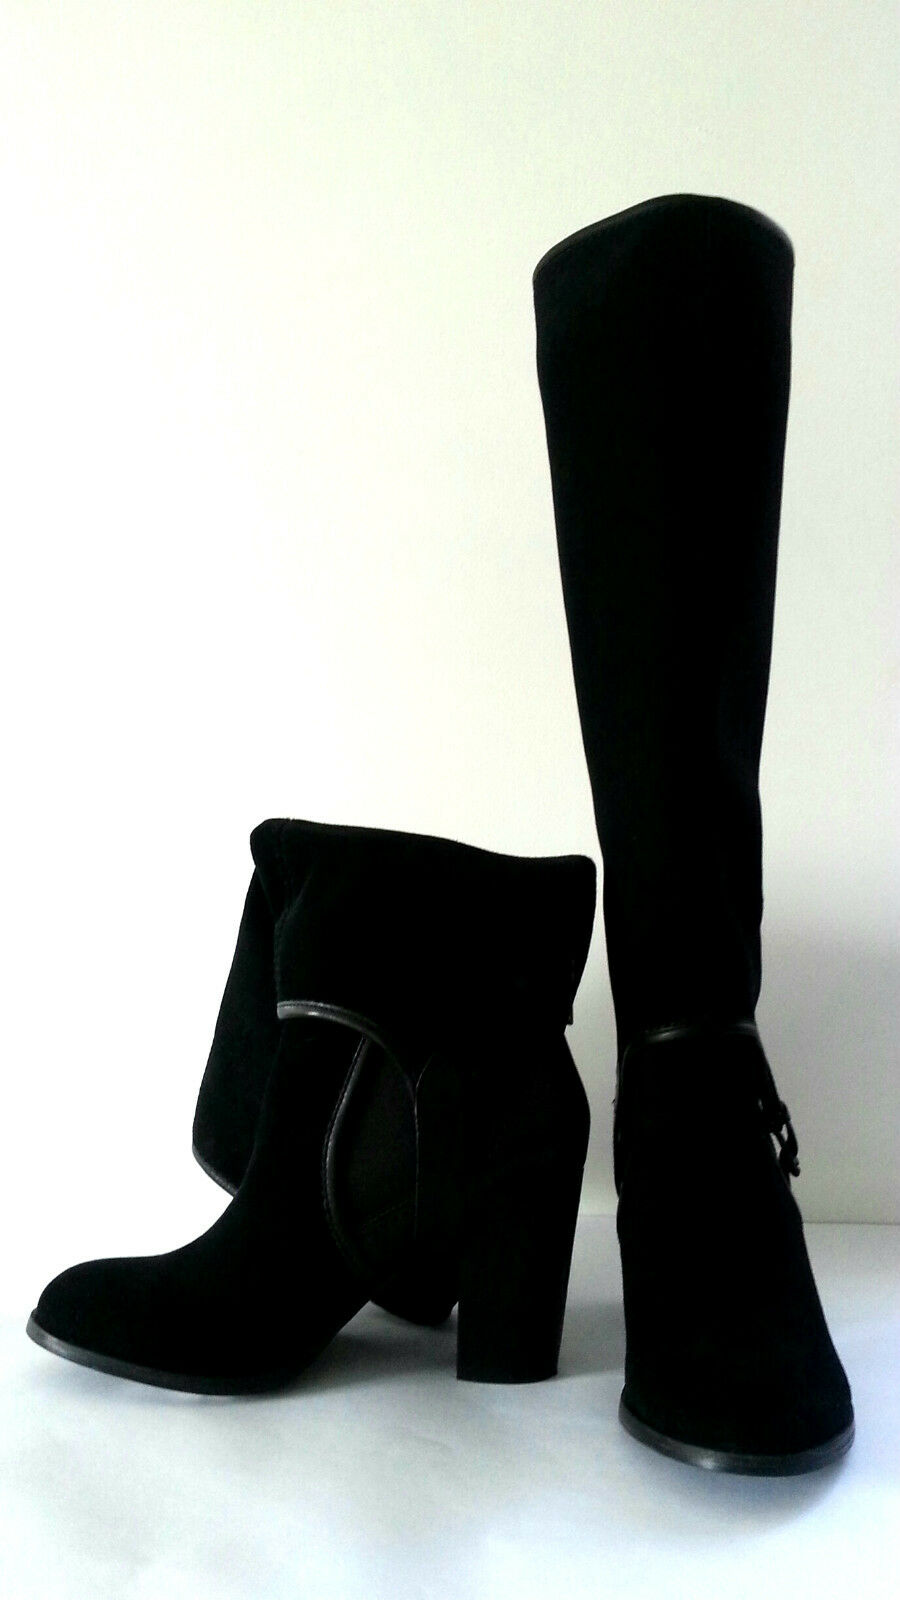 JOHN LEWIS VERANO - BOOTS BLACK 2 IN 1 BOOTS - - SIZE 6  BB260 7bc561